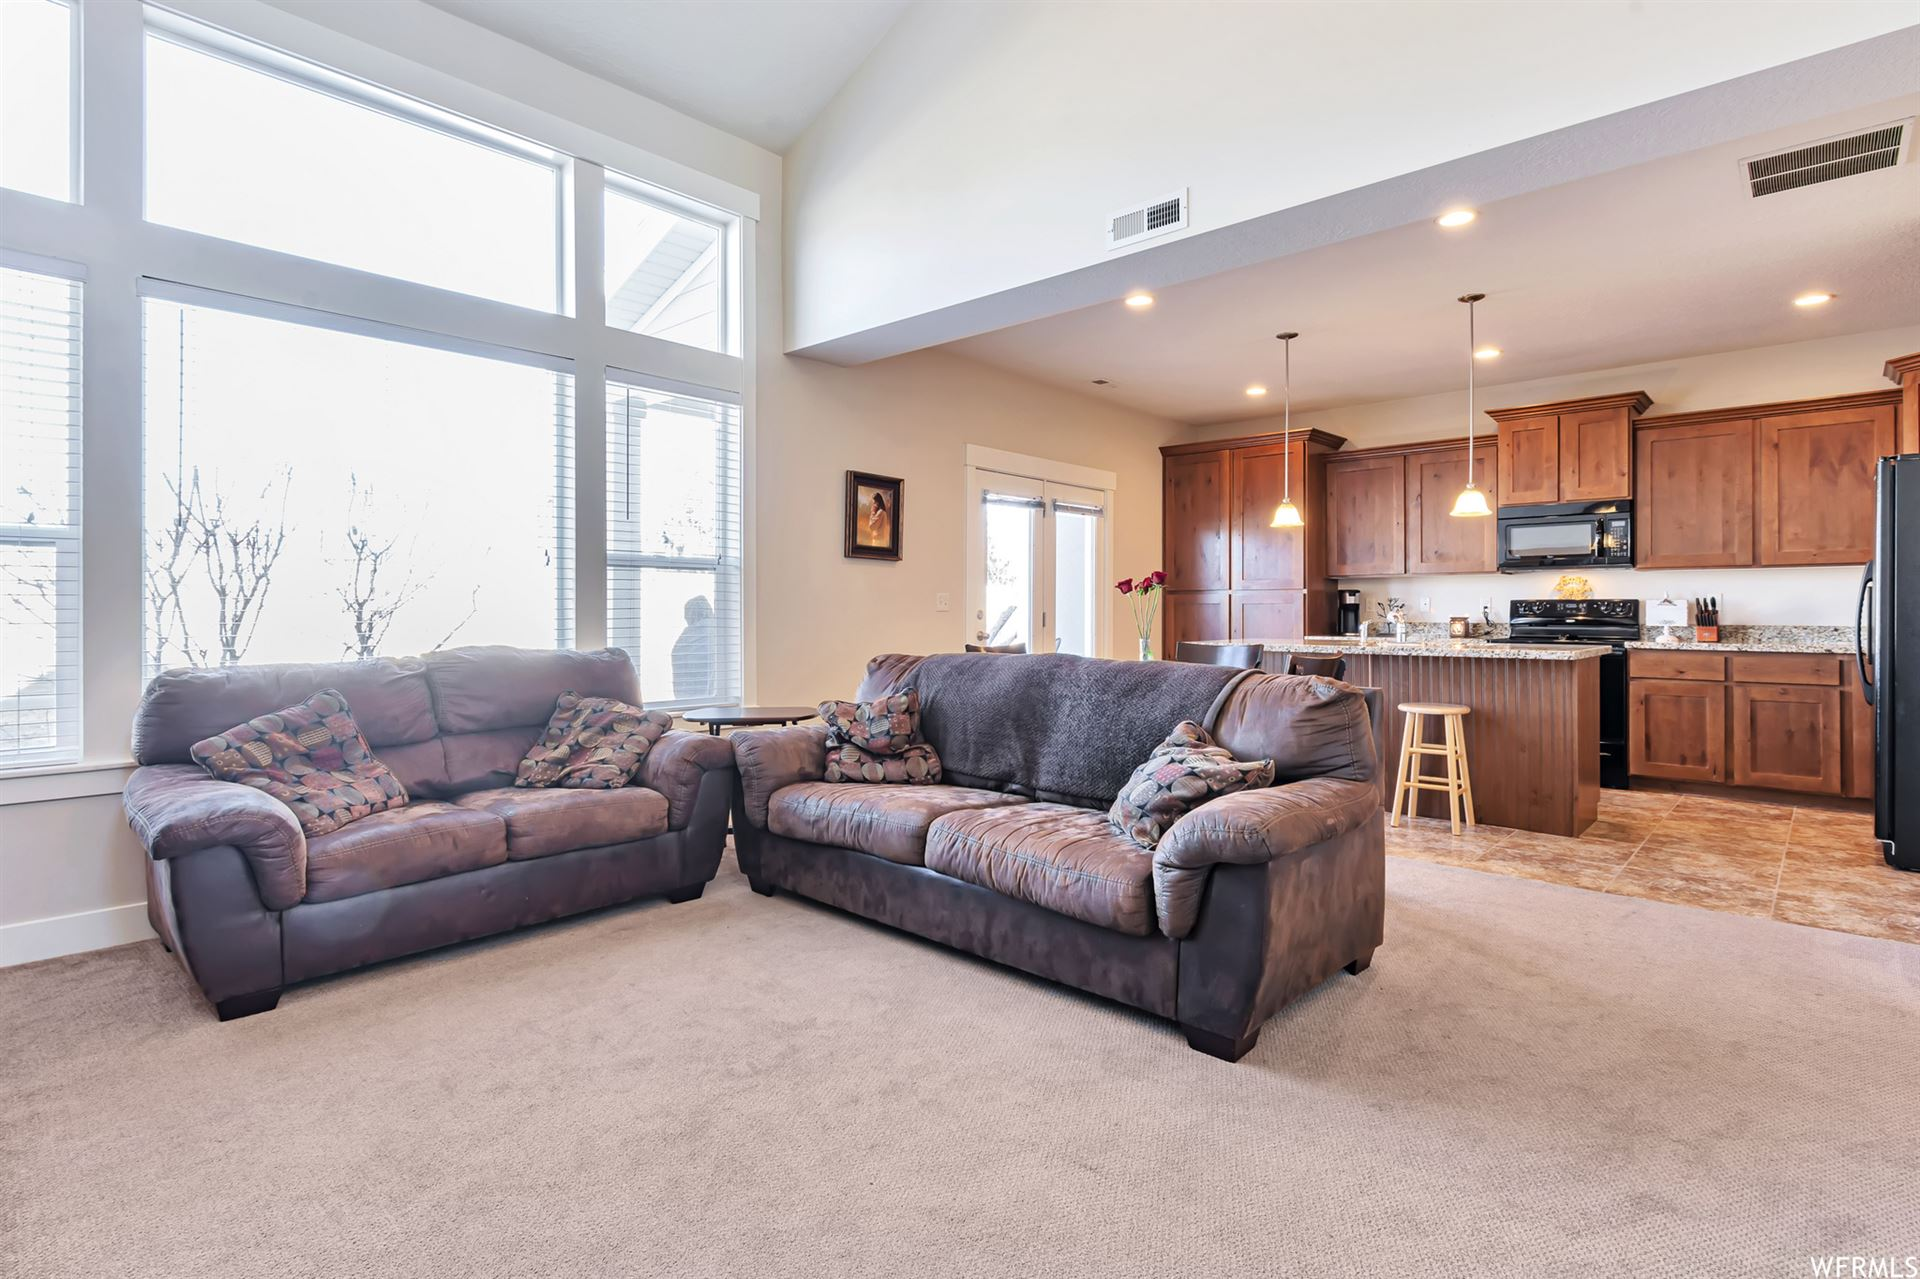 Photo of 1752 W WINFORD DR, Riverton, UT 84065 (MLS # 1726636)